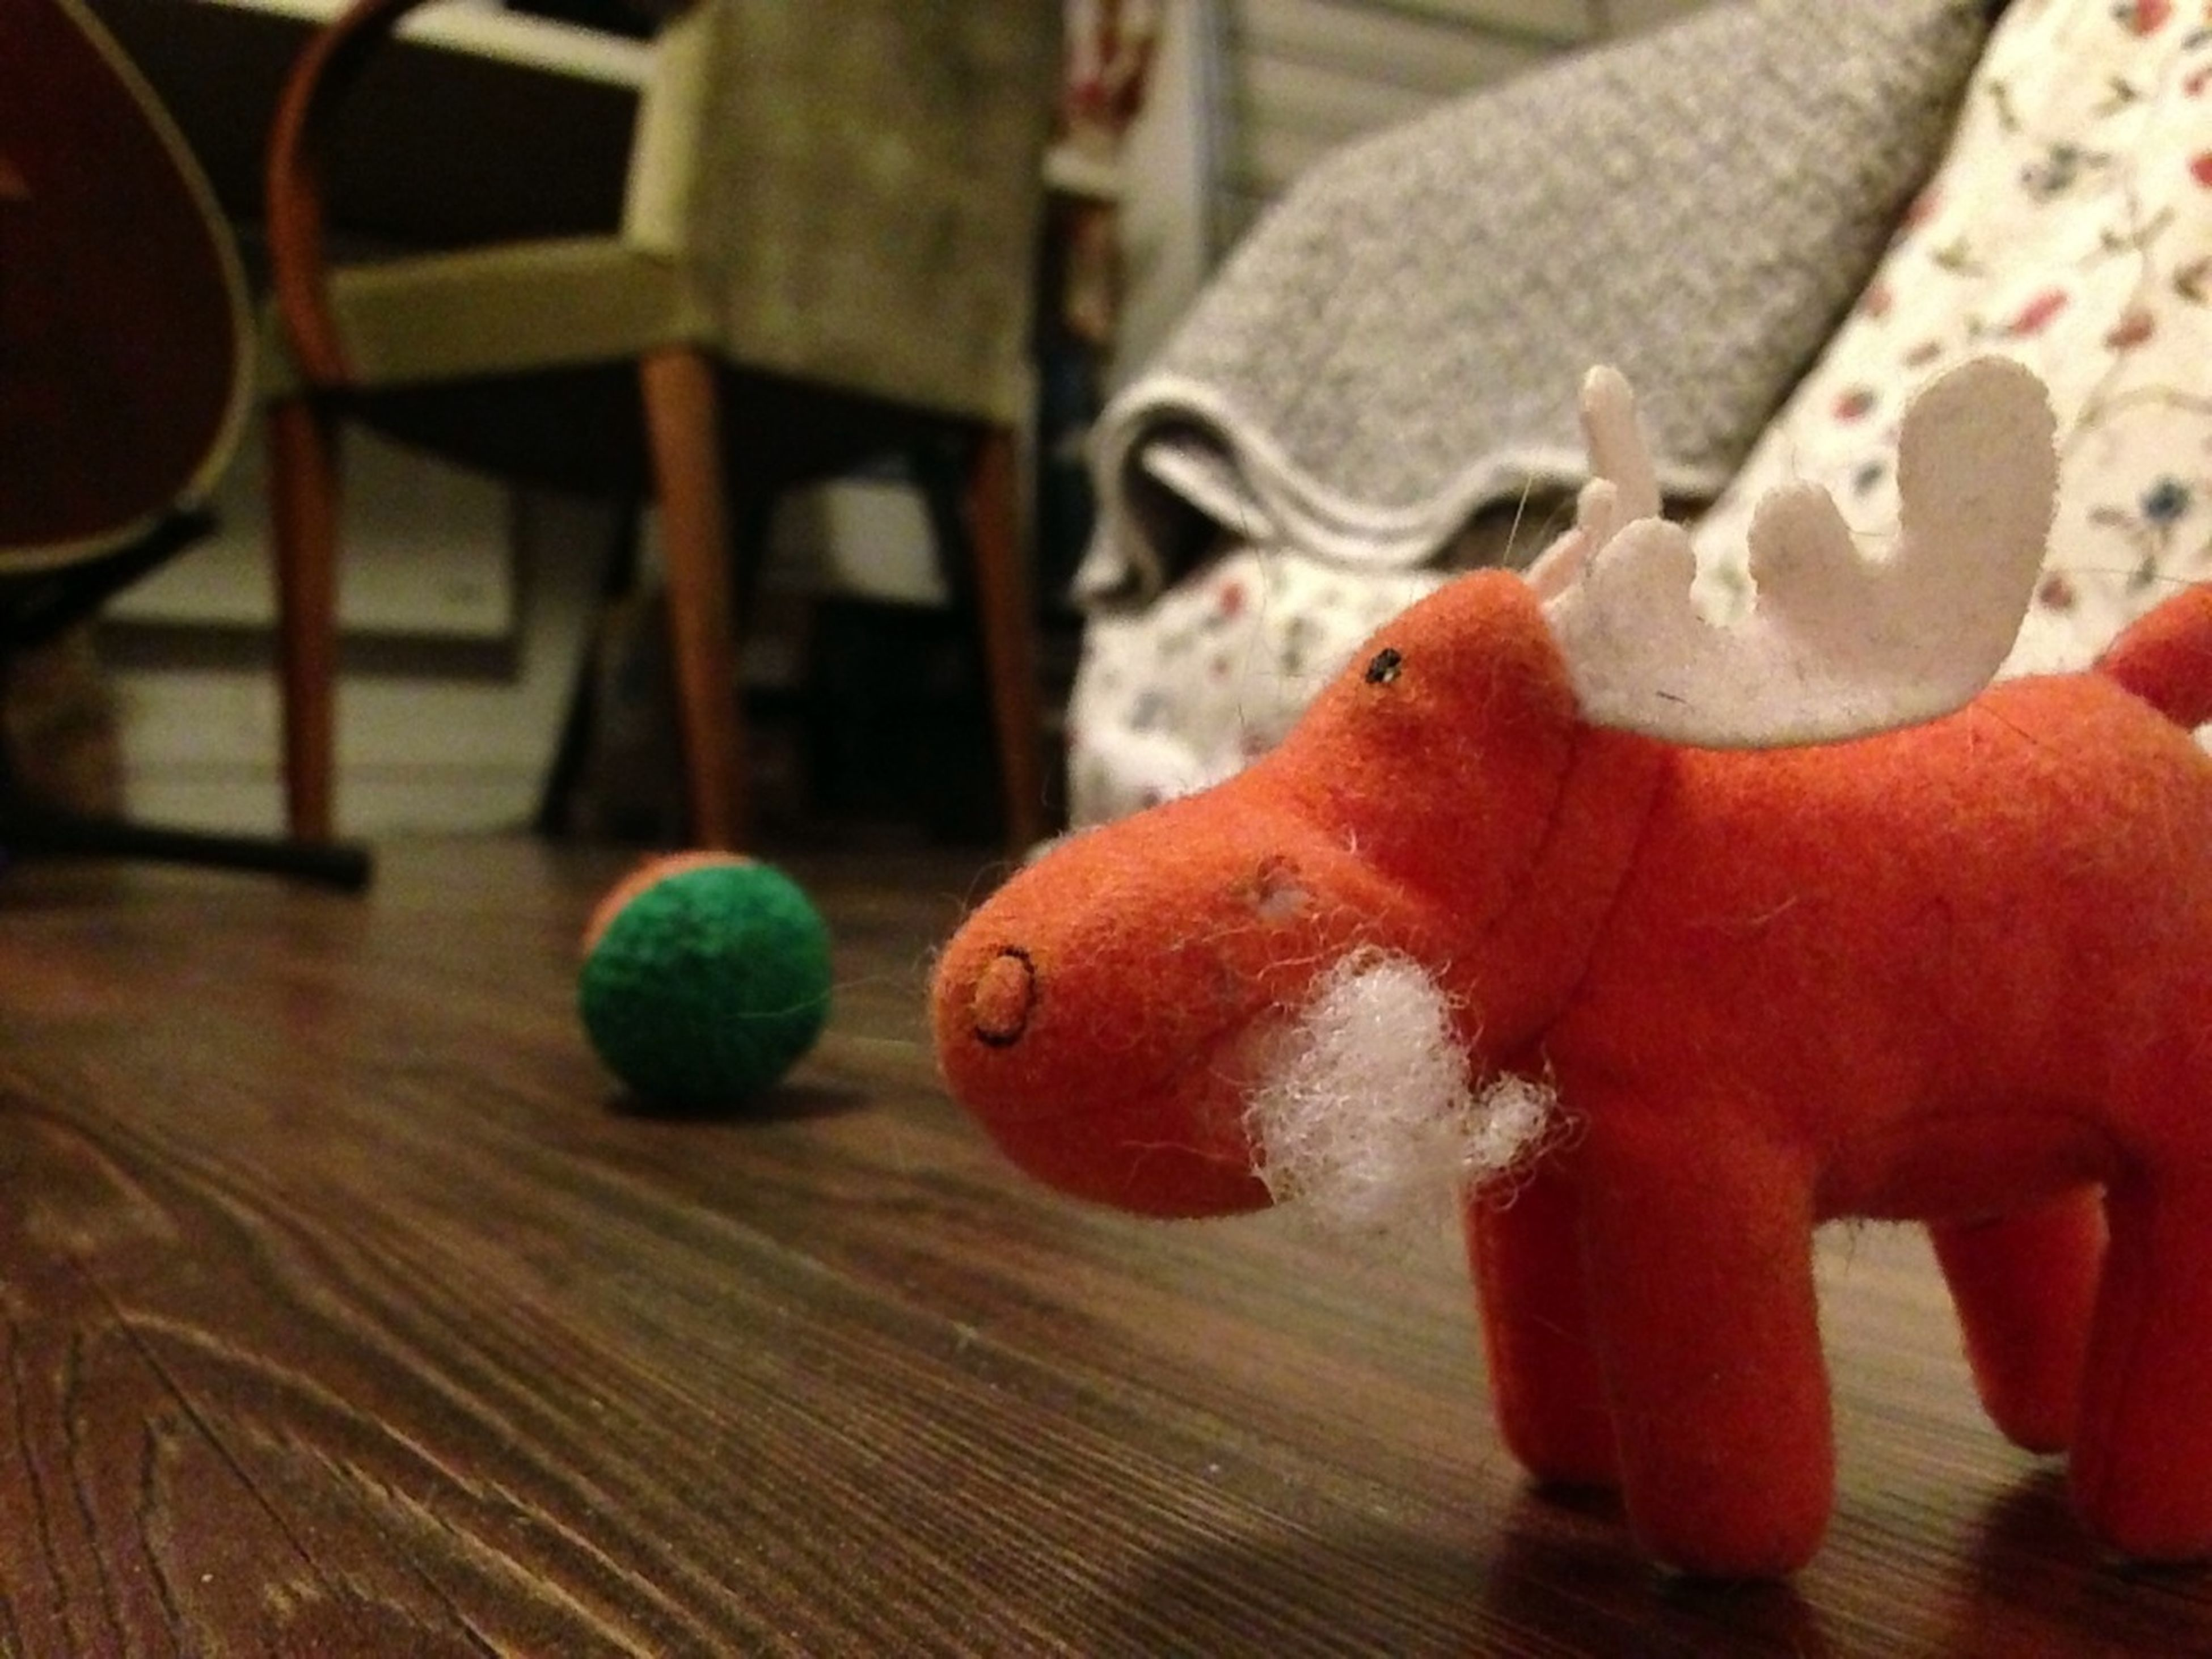 The Cat's Toys